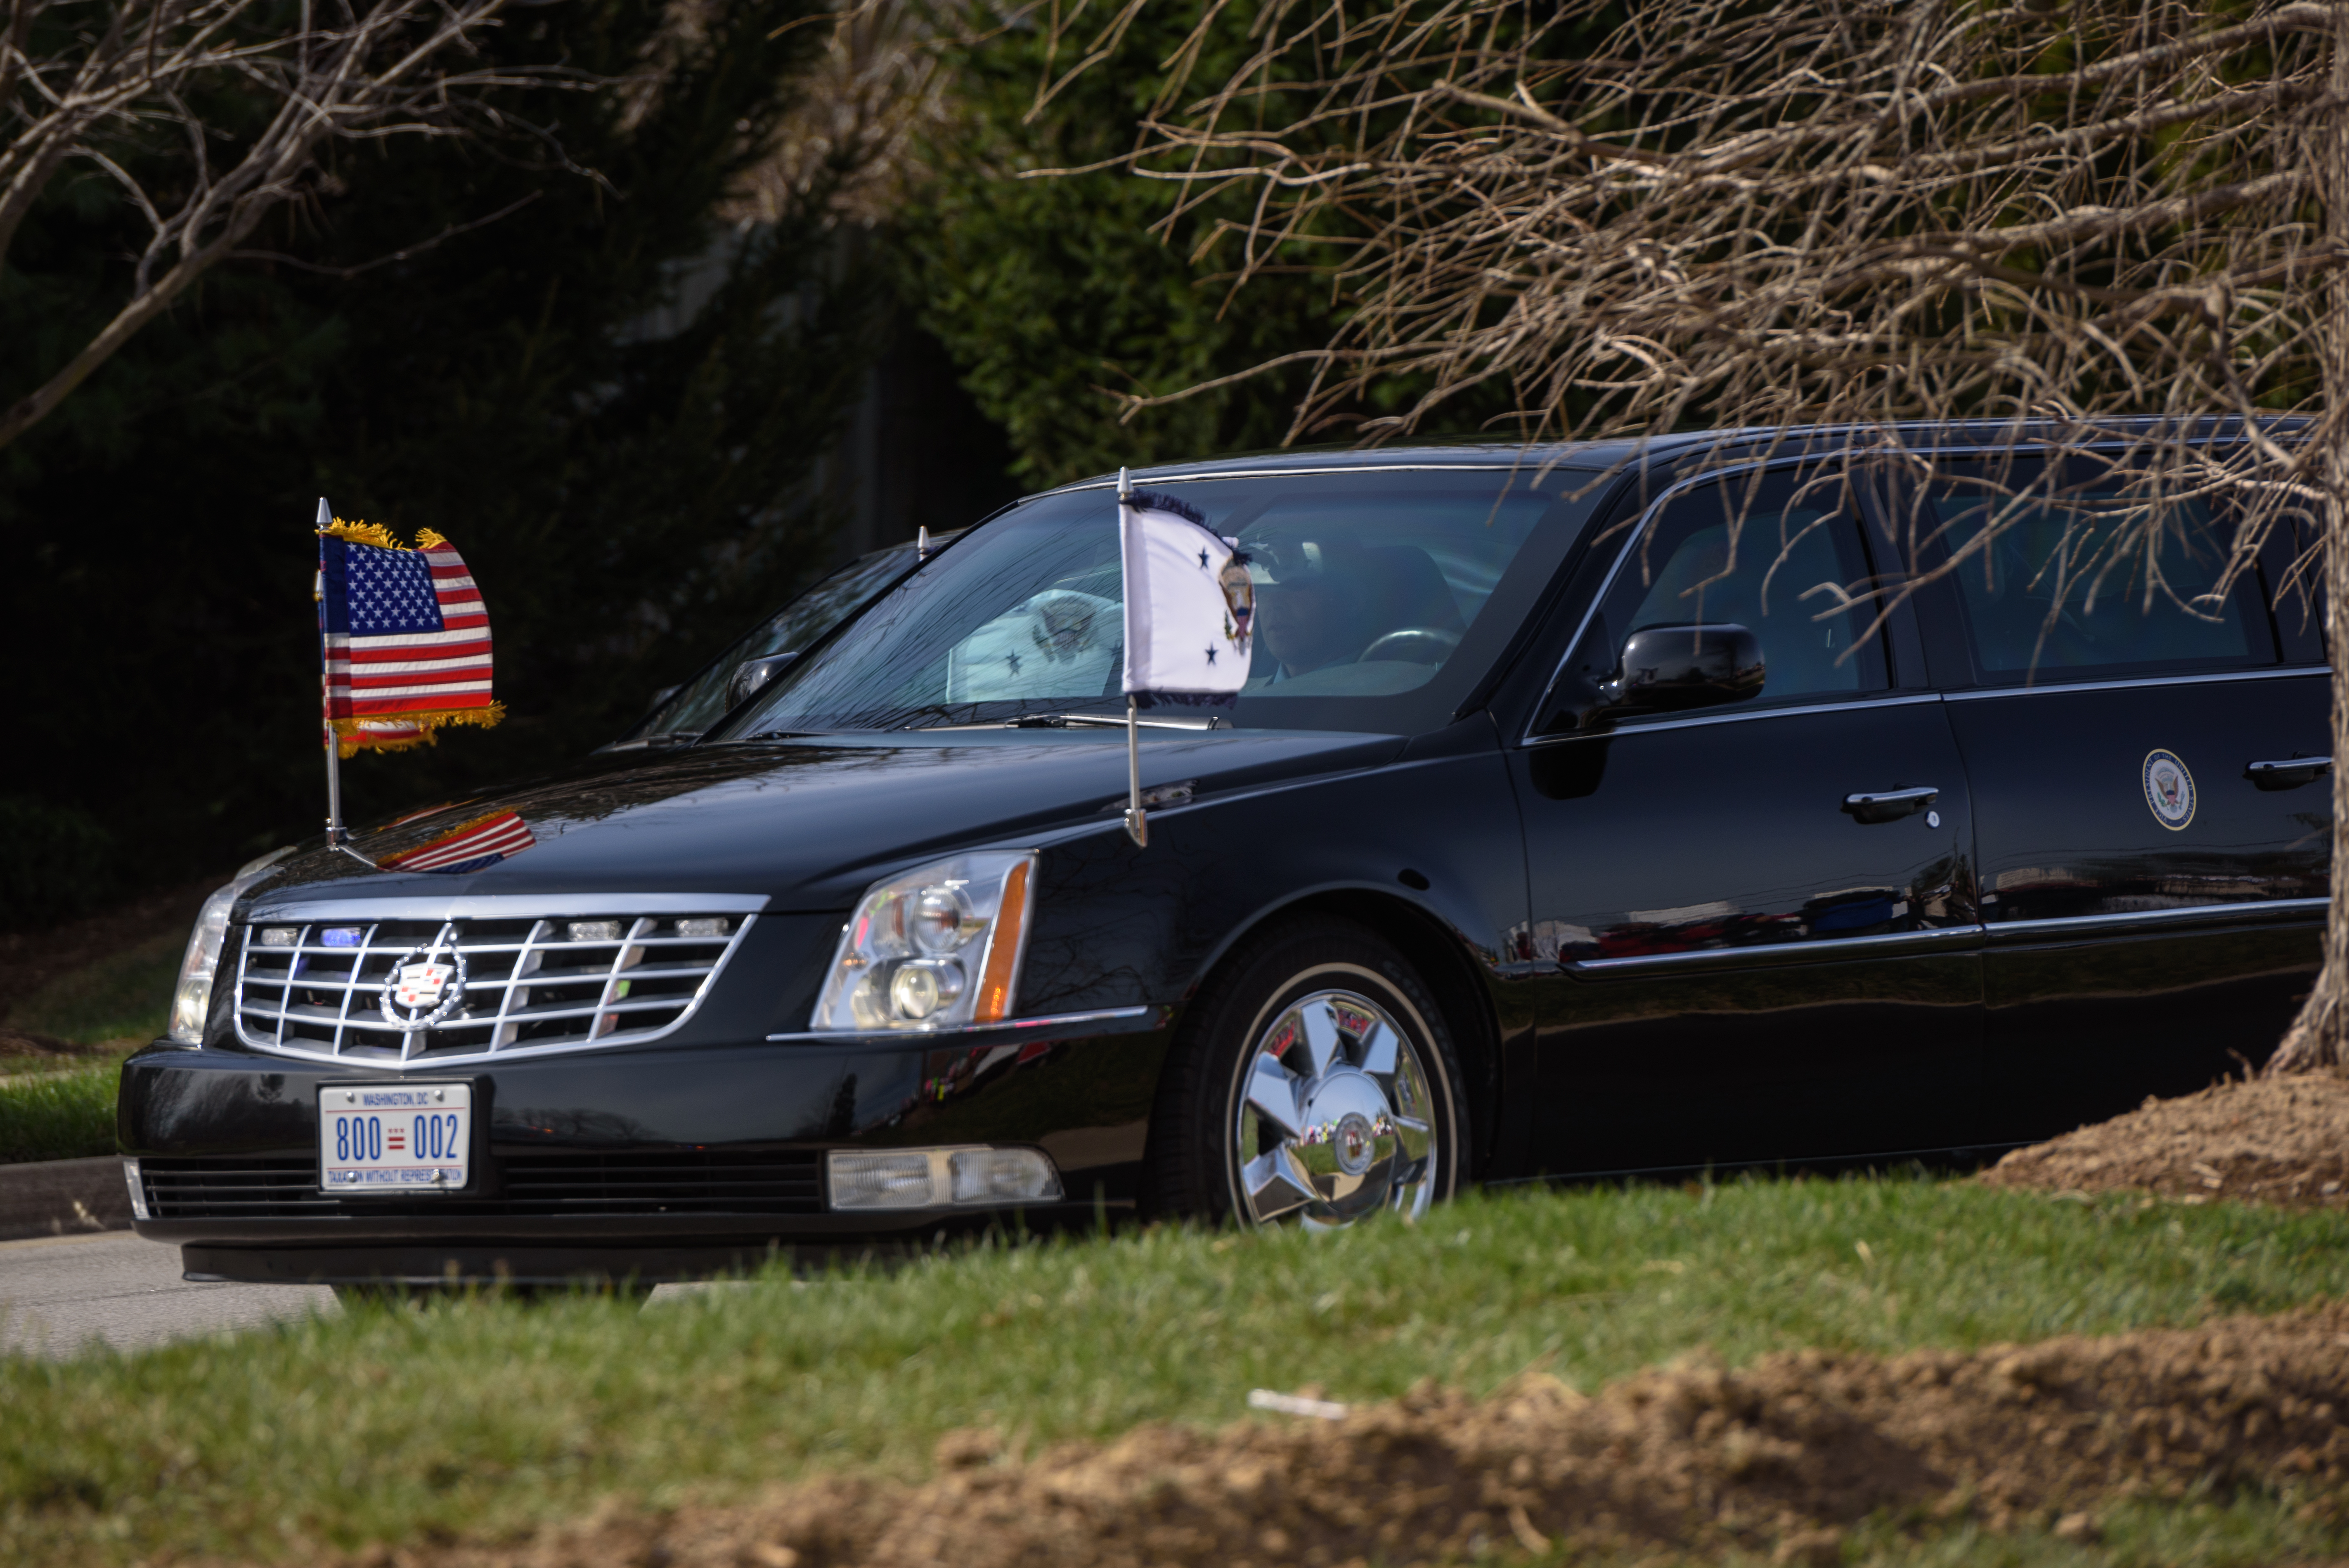 The arrival of the Vice Presidential limousine.